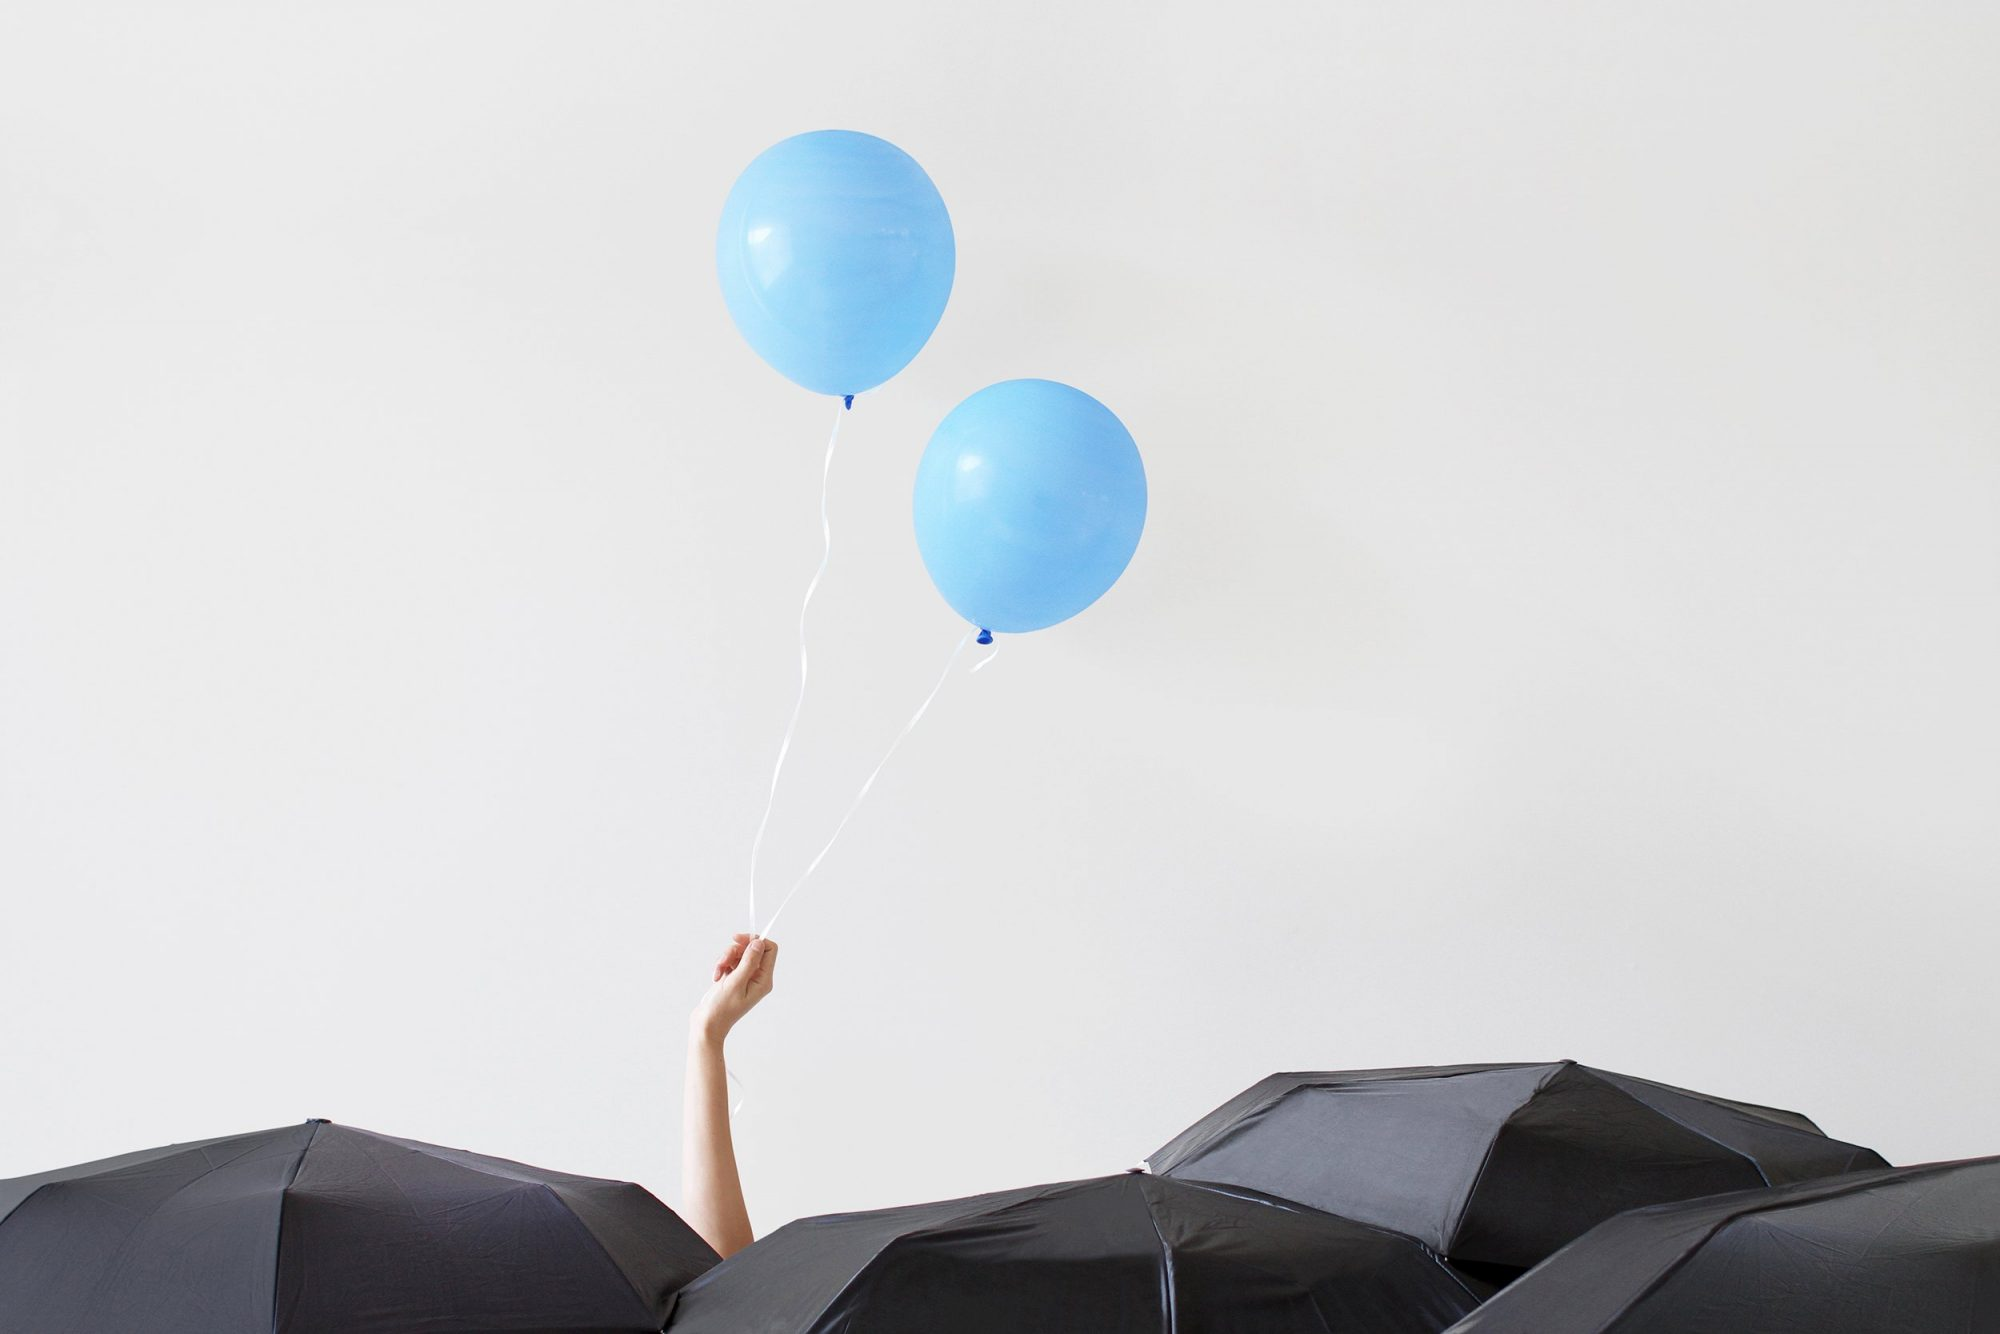 umbrellas ballons mental health self betterment happiness motto stock